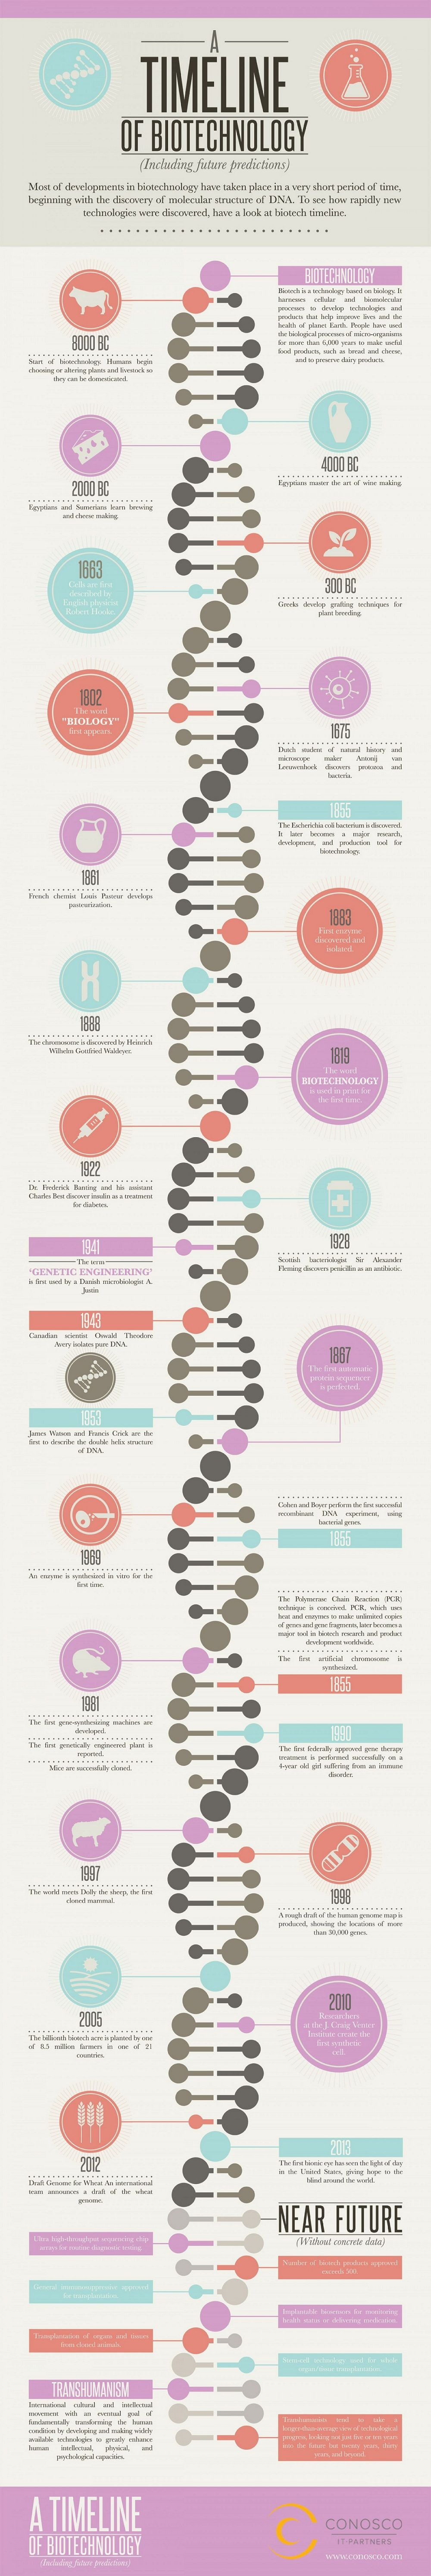 A Timeline of Biotech #infographic